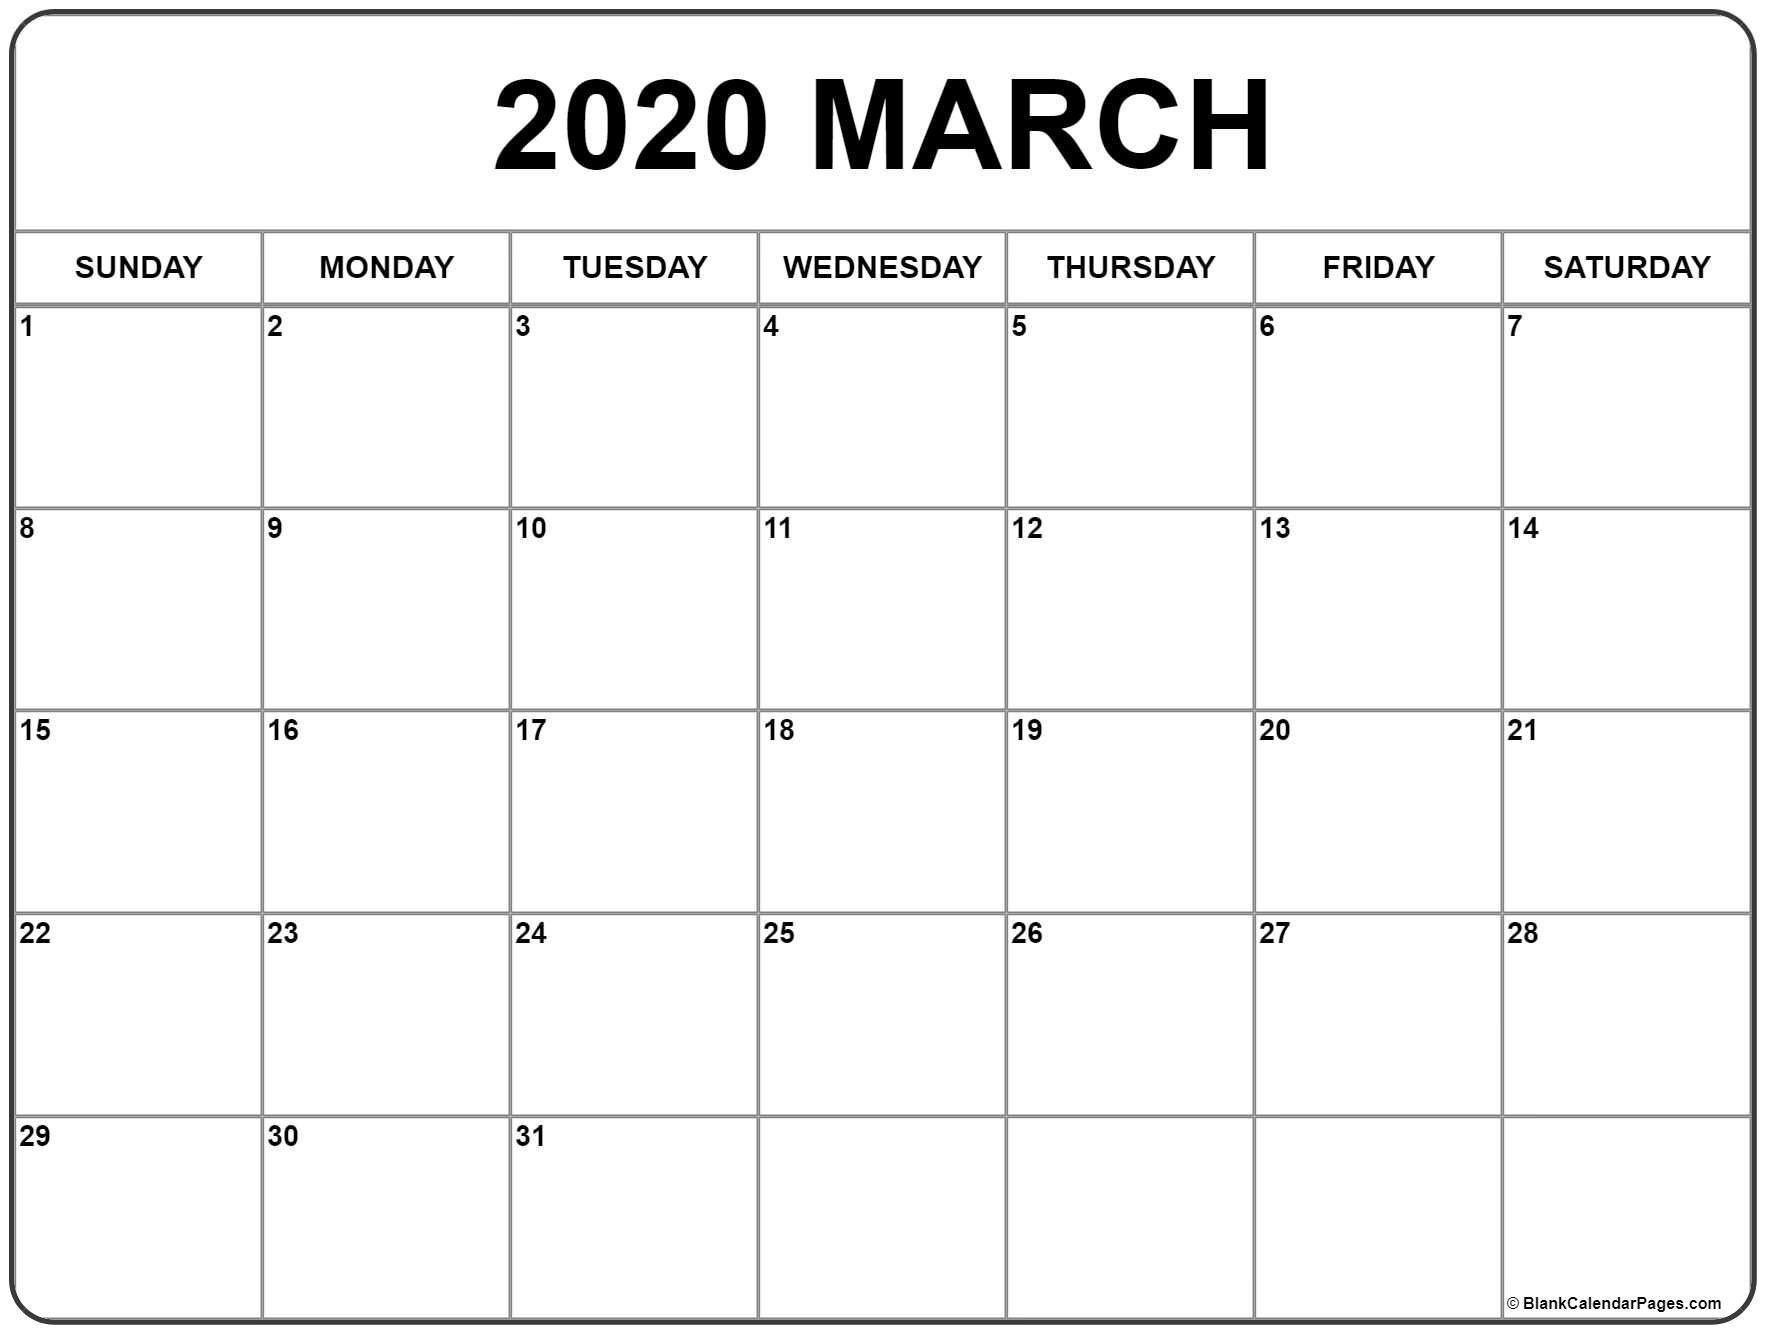 March 2020 Calendar | Free Printable Monthly Calendars inside Free Fill In Calendars 2020